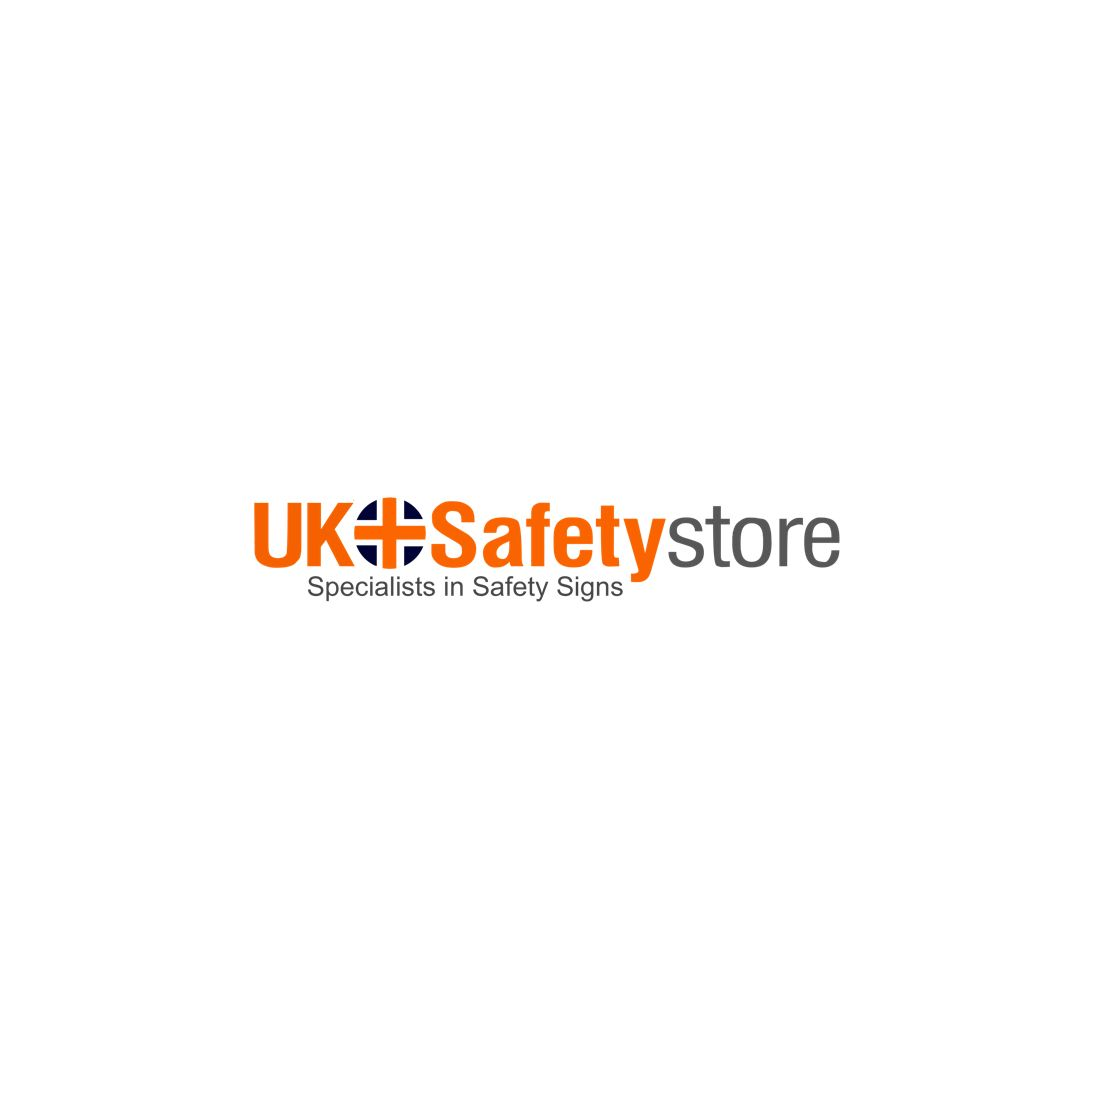 All Workers Must Report To The Site Office For A Safety Induction Prior To Starting Work On Site Custom Logo Sign - 400Wmm x300Hmm - 1mm Rigid Plastic